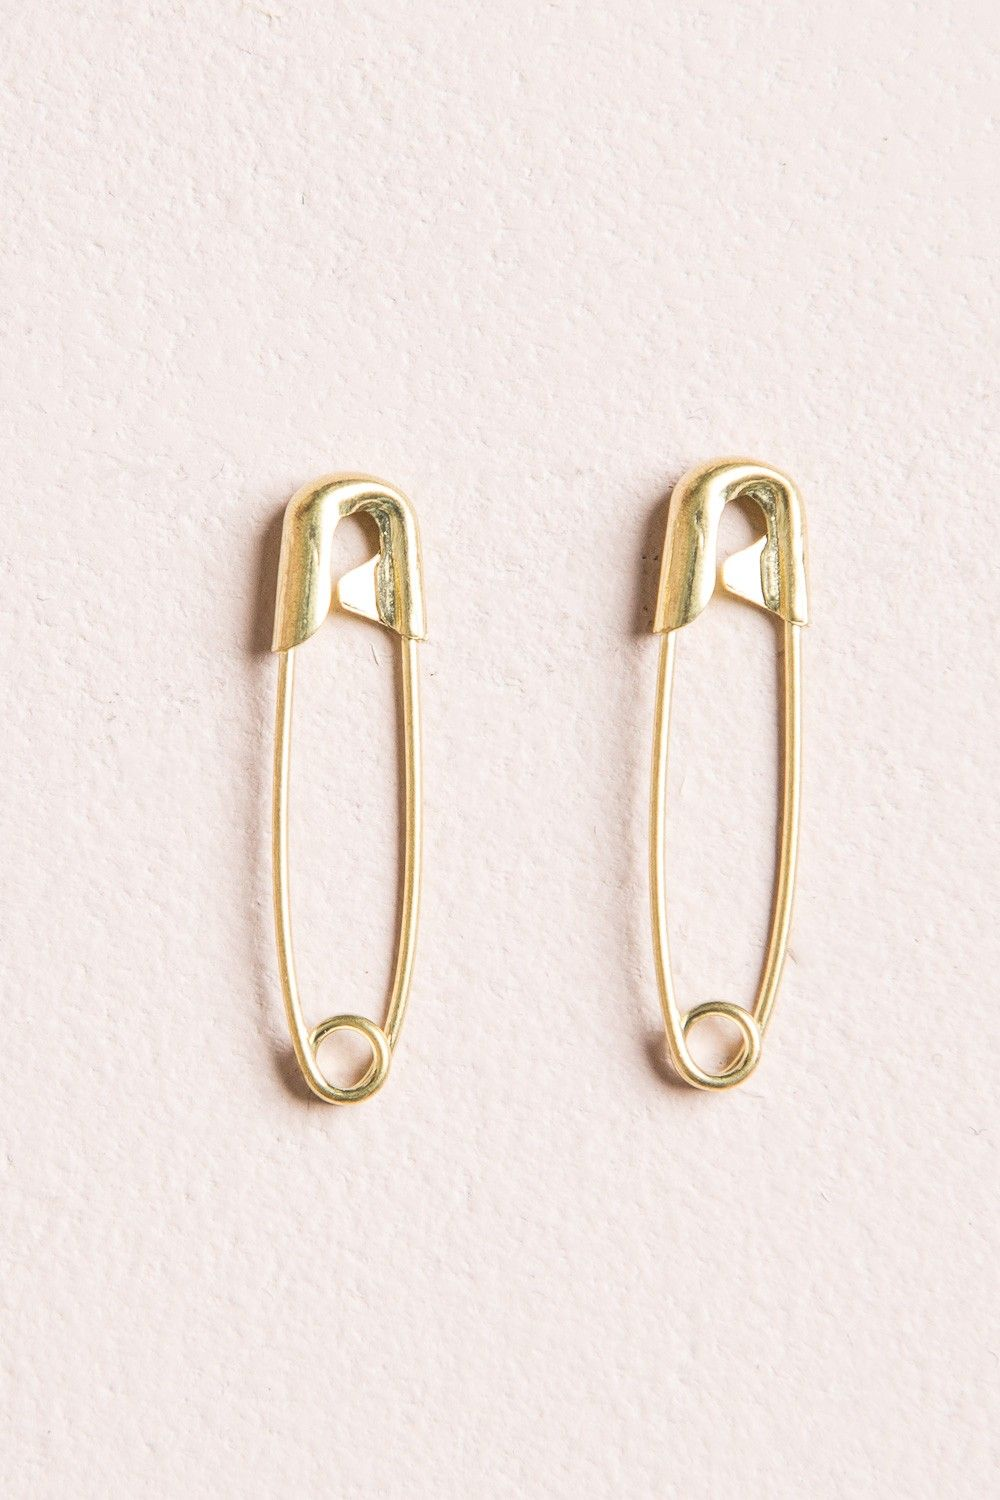 Brandy Melville Gold Safety Pin Earrings Jewelry